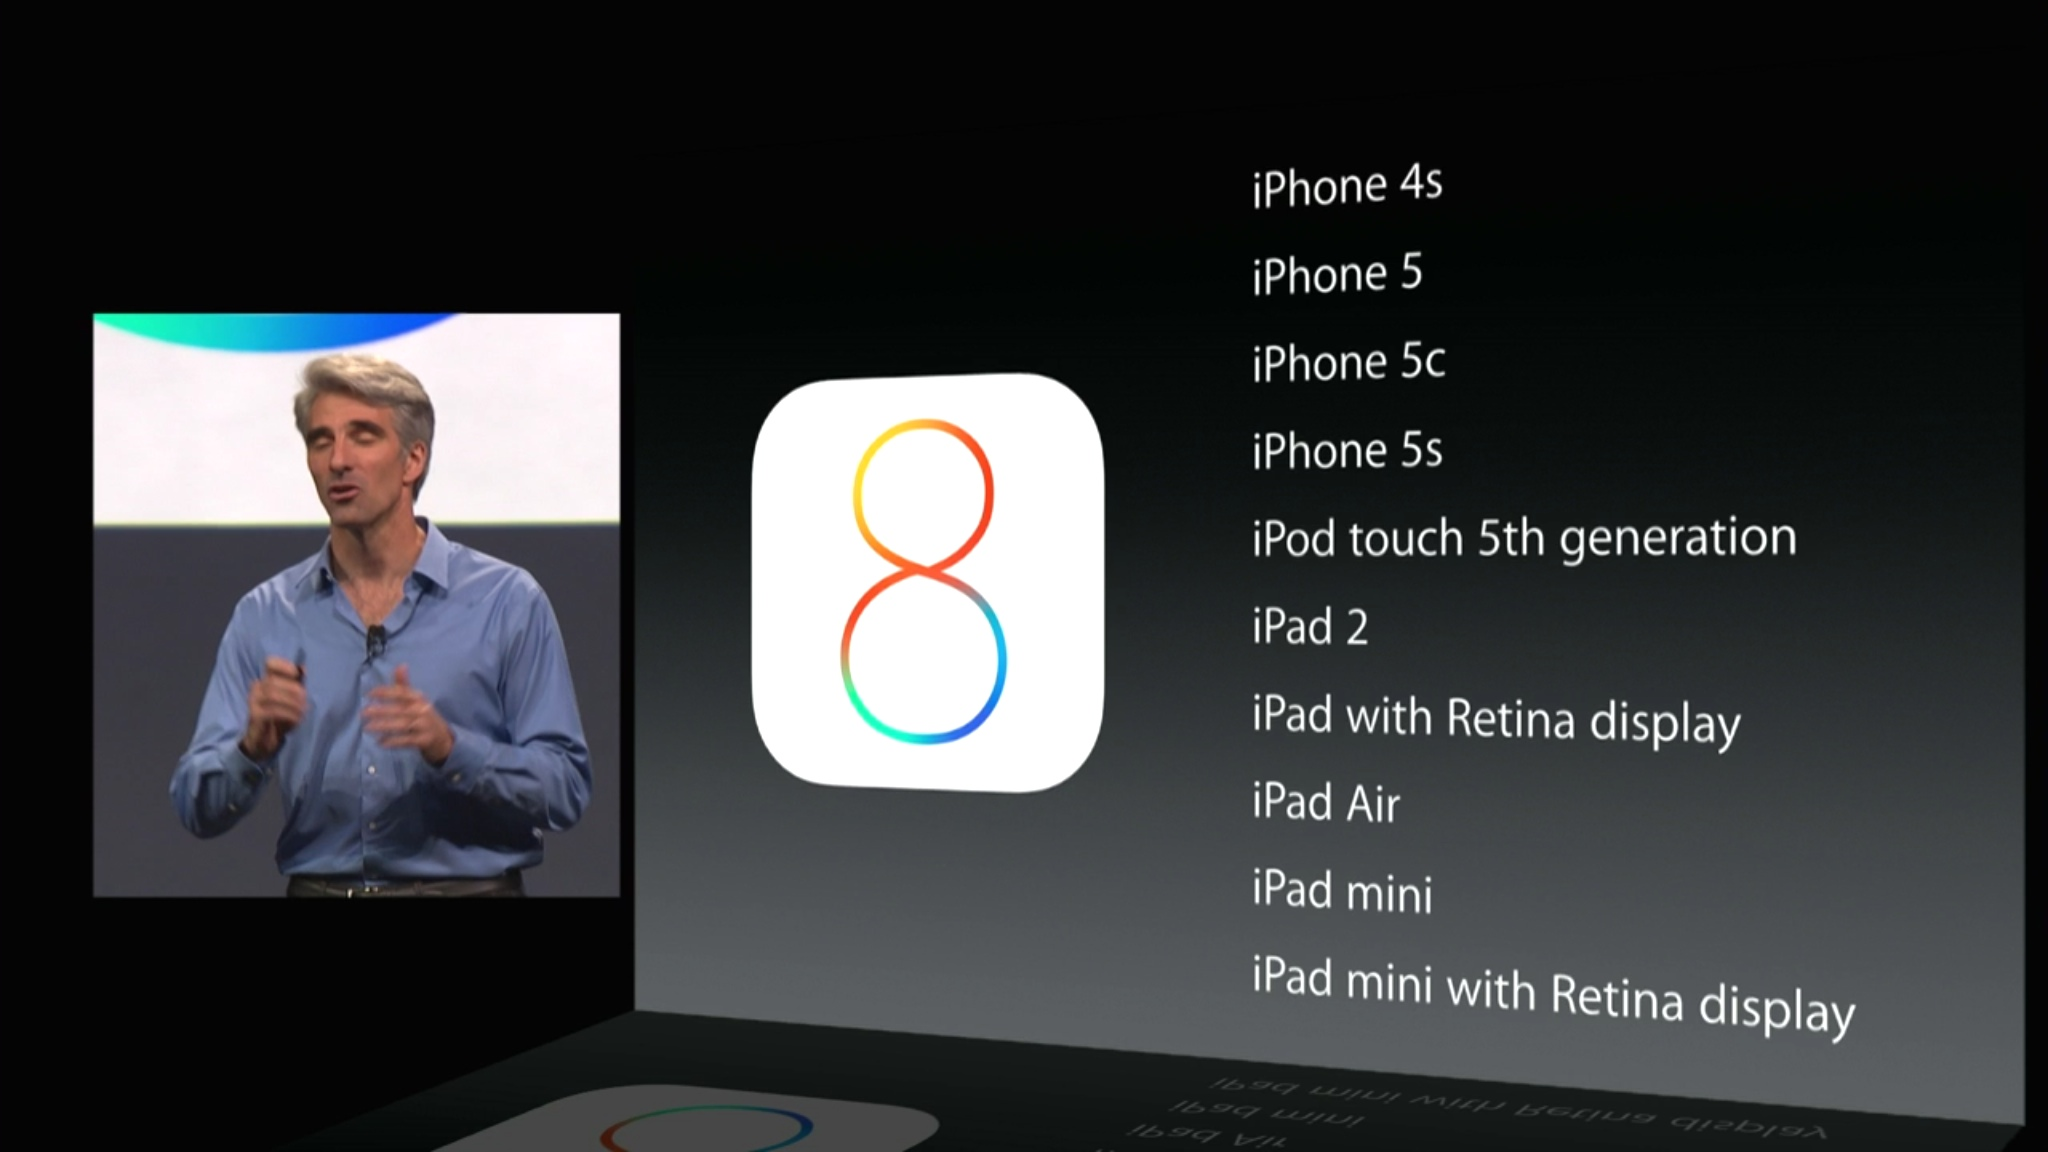 iOS 8 Beta Devices Support